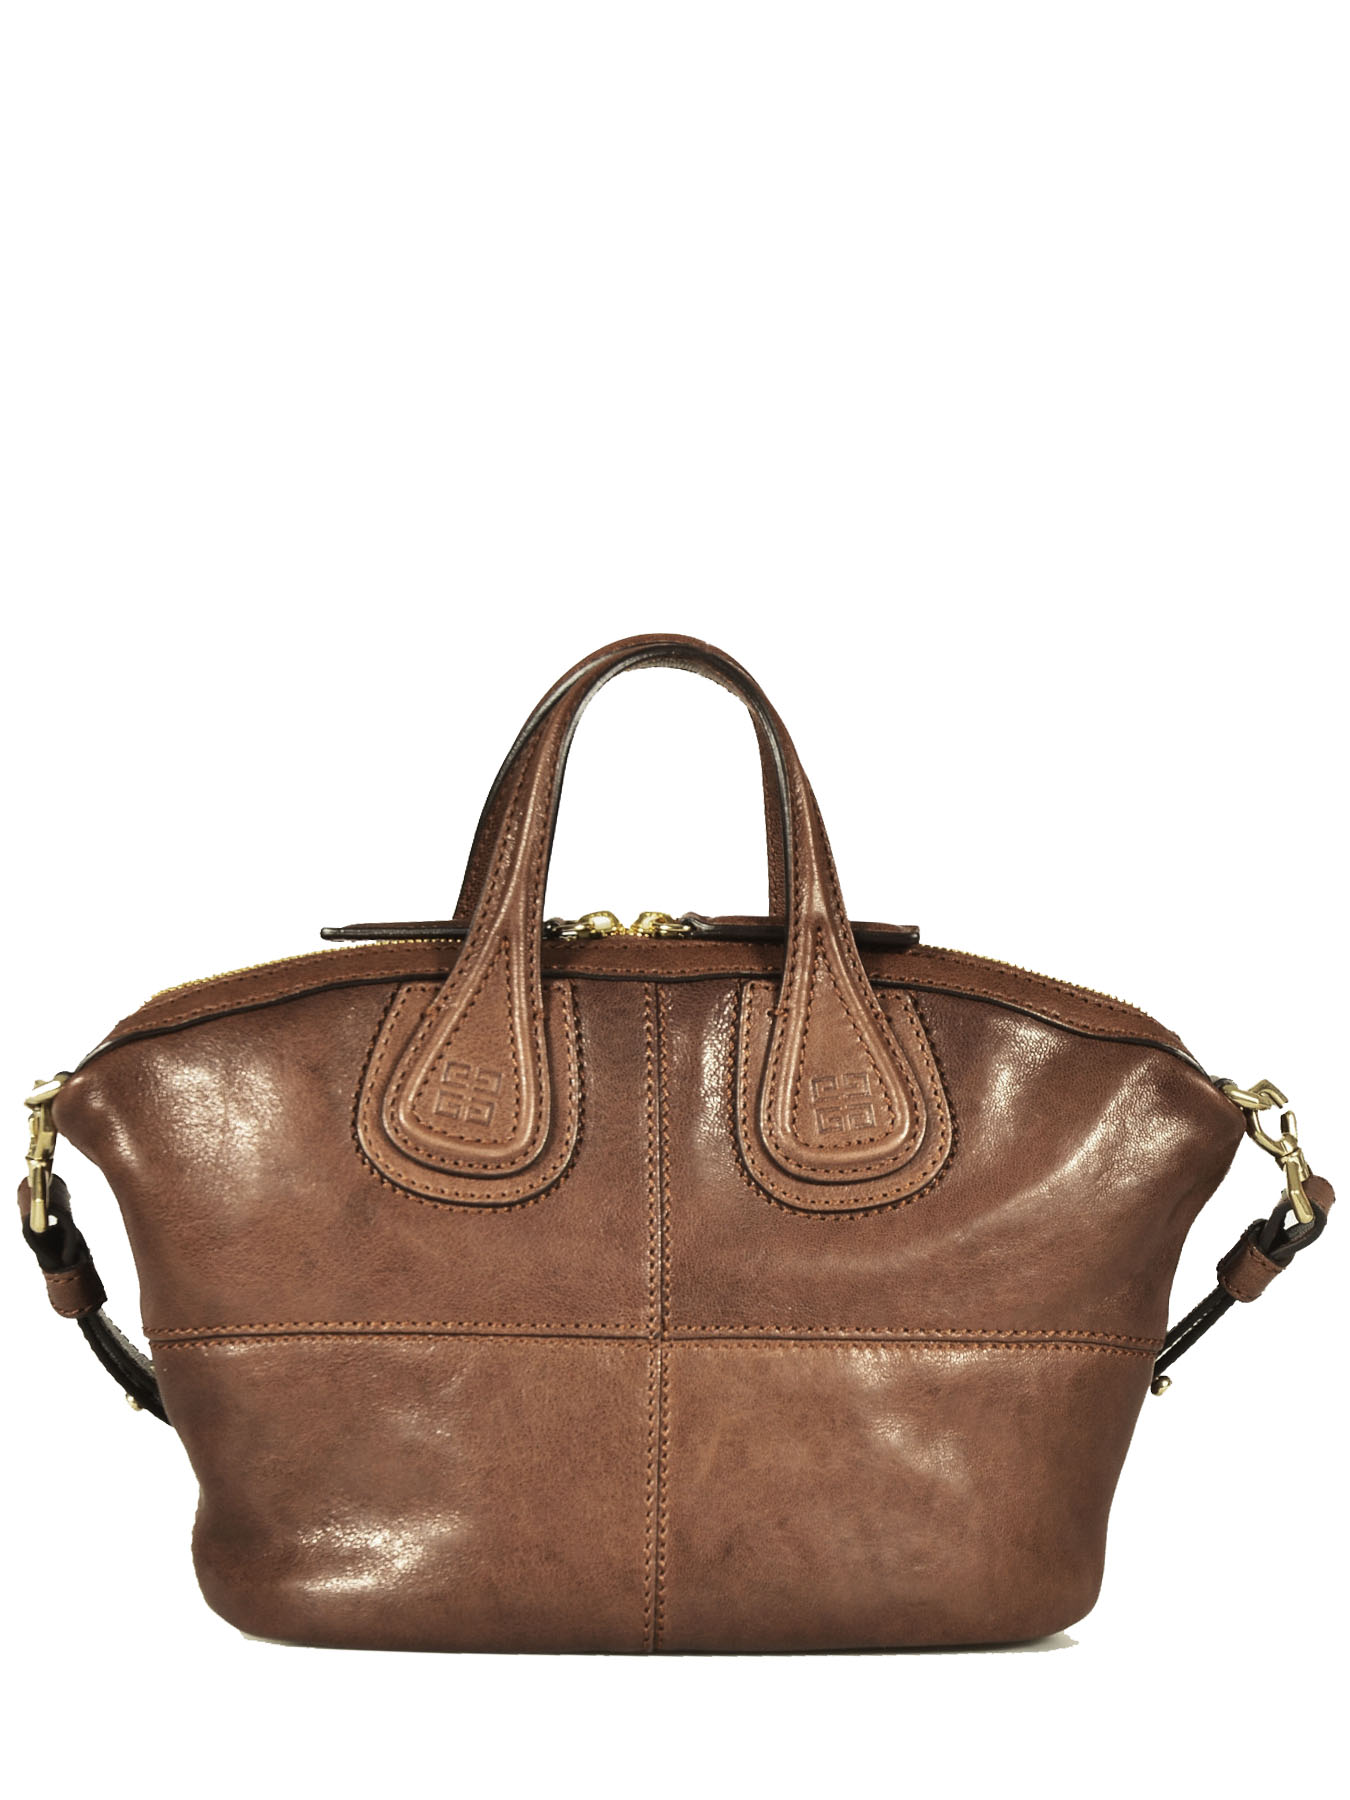 Sac Givenchy Nightingale